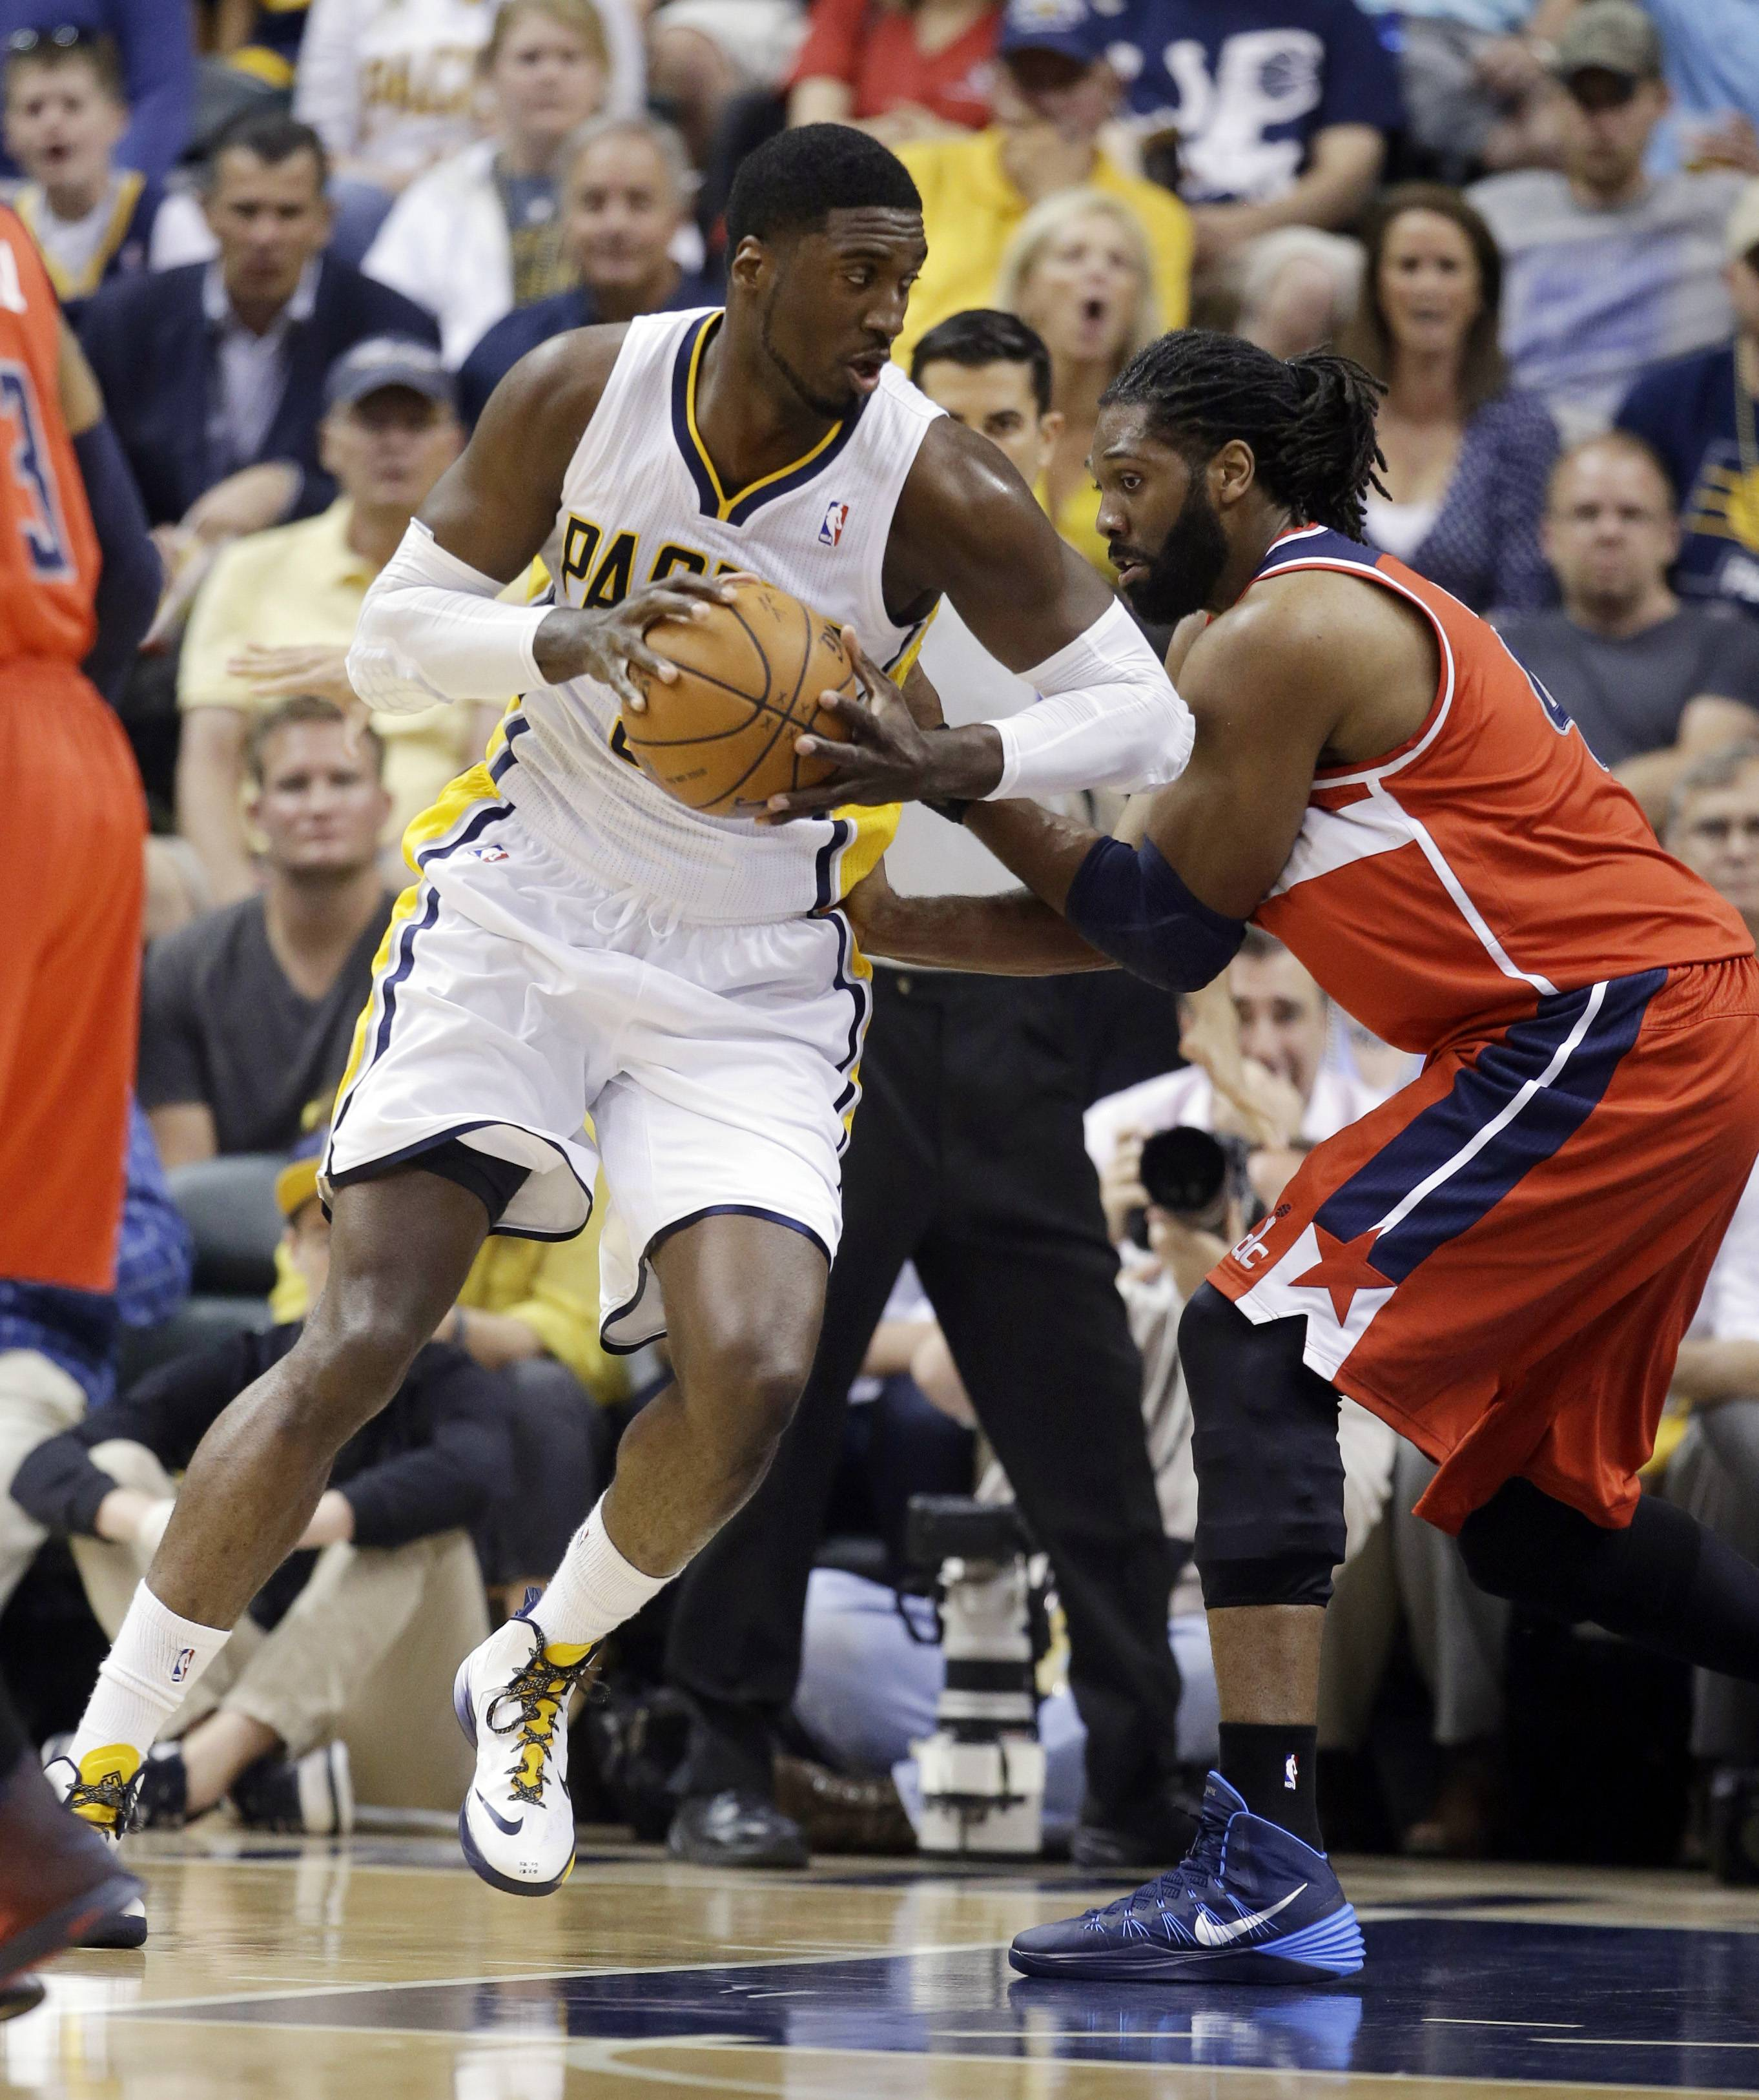 Indiana Pacers center Roy Hibbert, left, drives on Washington Wizards forward Nene Hilario during the first half of game 2 of the Eastern Conference semifinal NBA basketball playoff series Wednesday, May 7, 2014, in Indianapolis. (AP Photo/Darron Cummings)